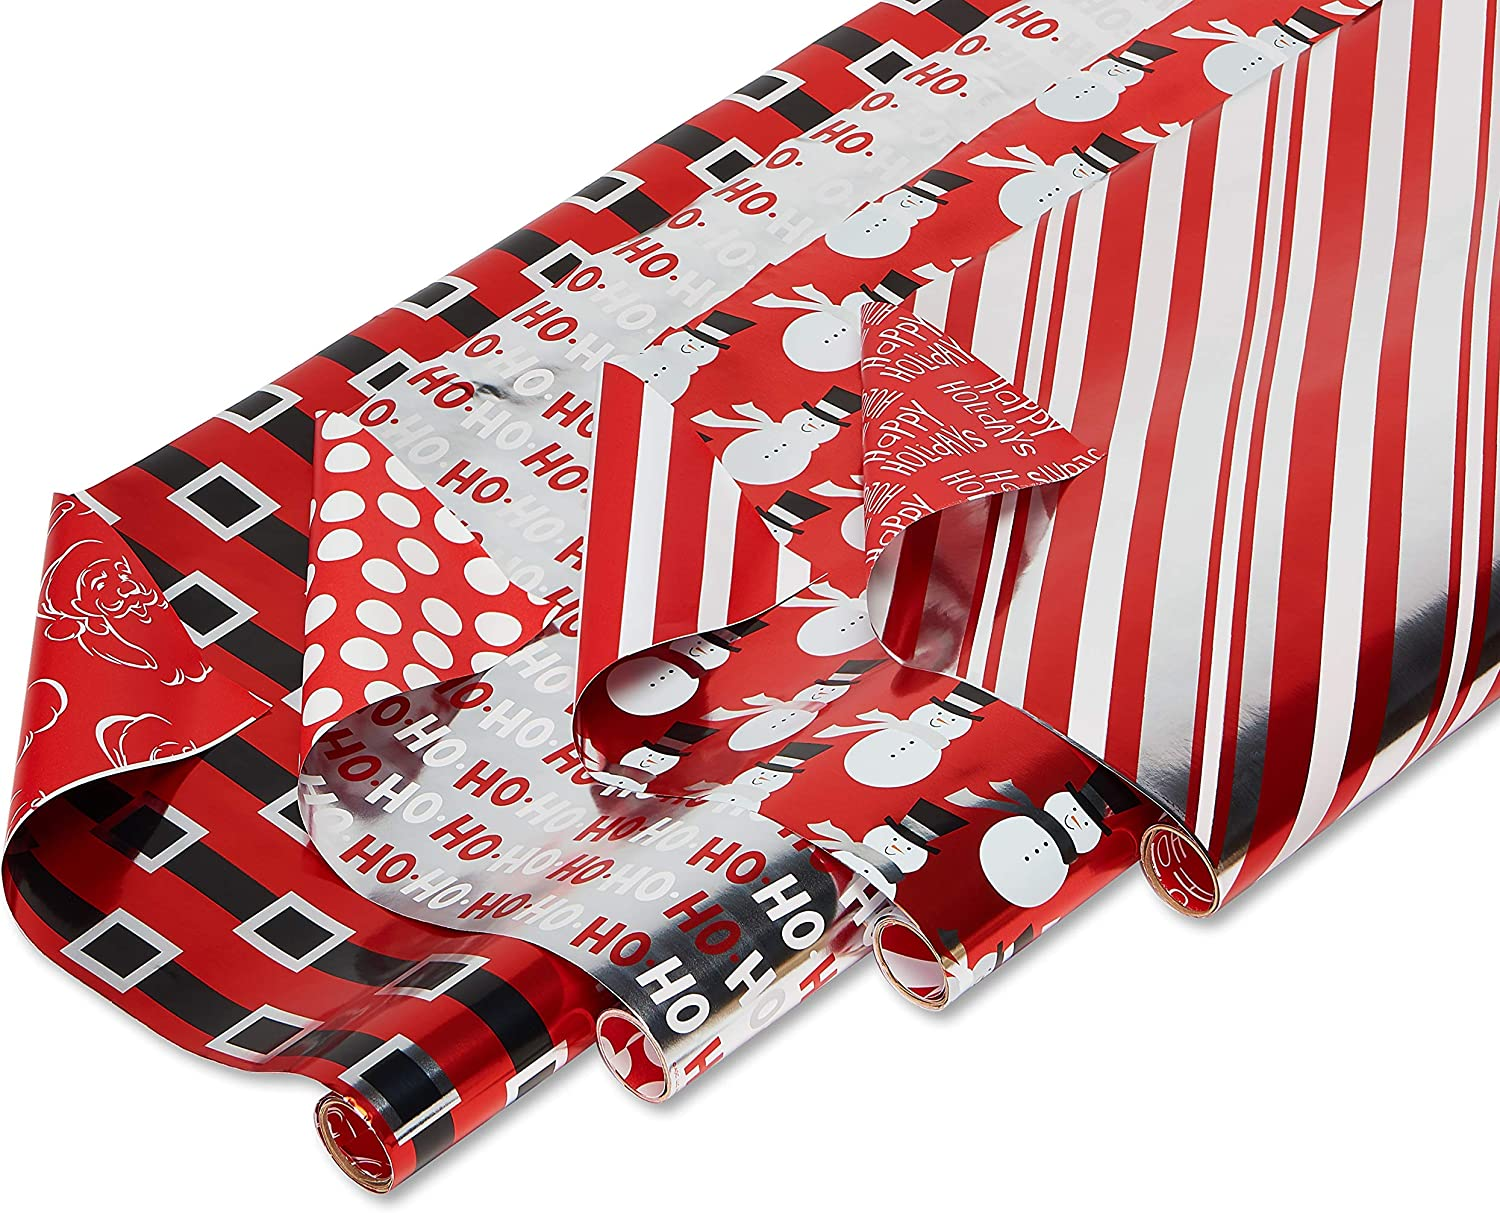 """American Greetings Reversible Christmas Foil Wrapping Paper, Red, Black and Silver, Candy Cane Stripe, Snowmen and Santa Belt (4 Pack, 30"""", 80 sq. ft.)"""